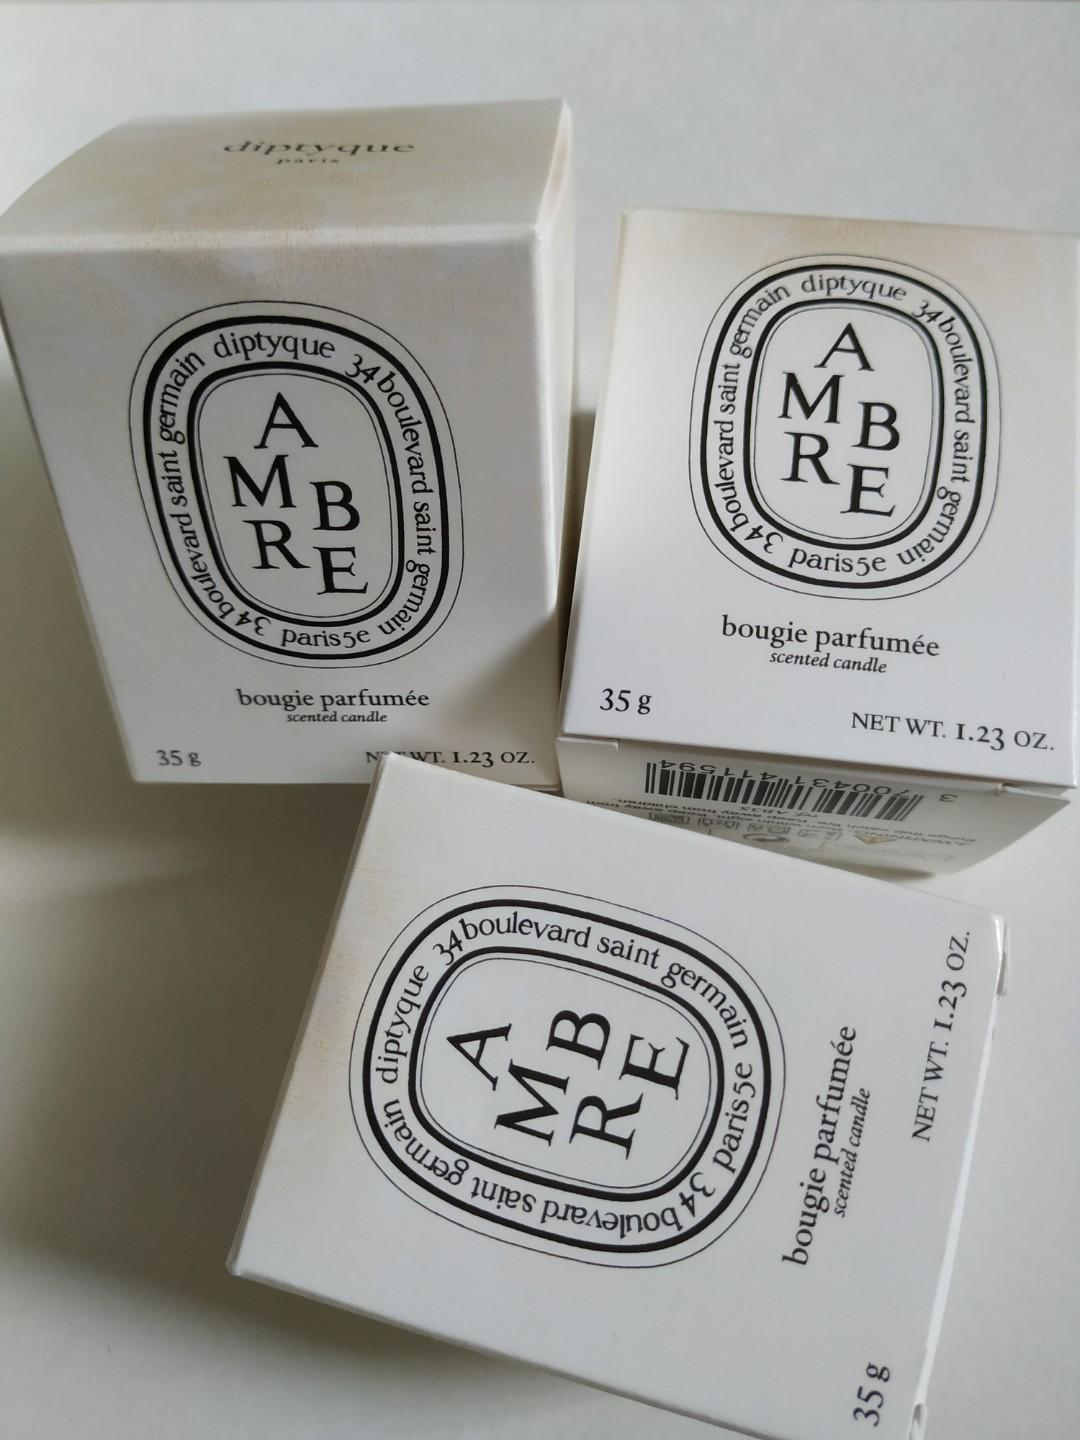 Diptyque 香氛蠟燭 蠟燭 Diptyque Amber Scented Candle (35 g) #only1left